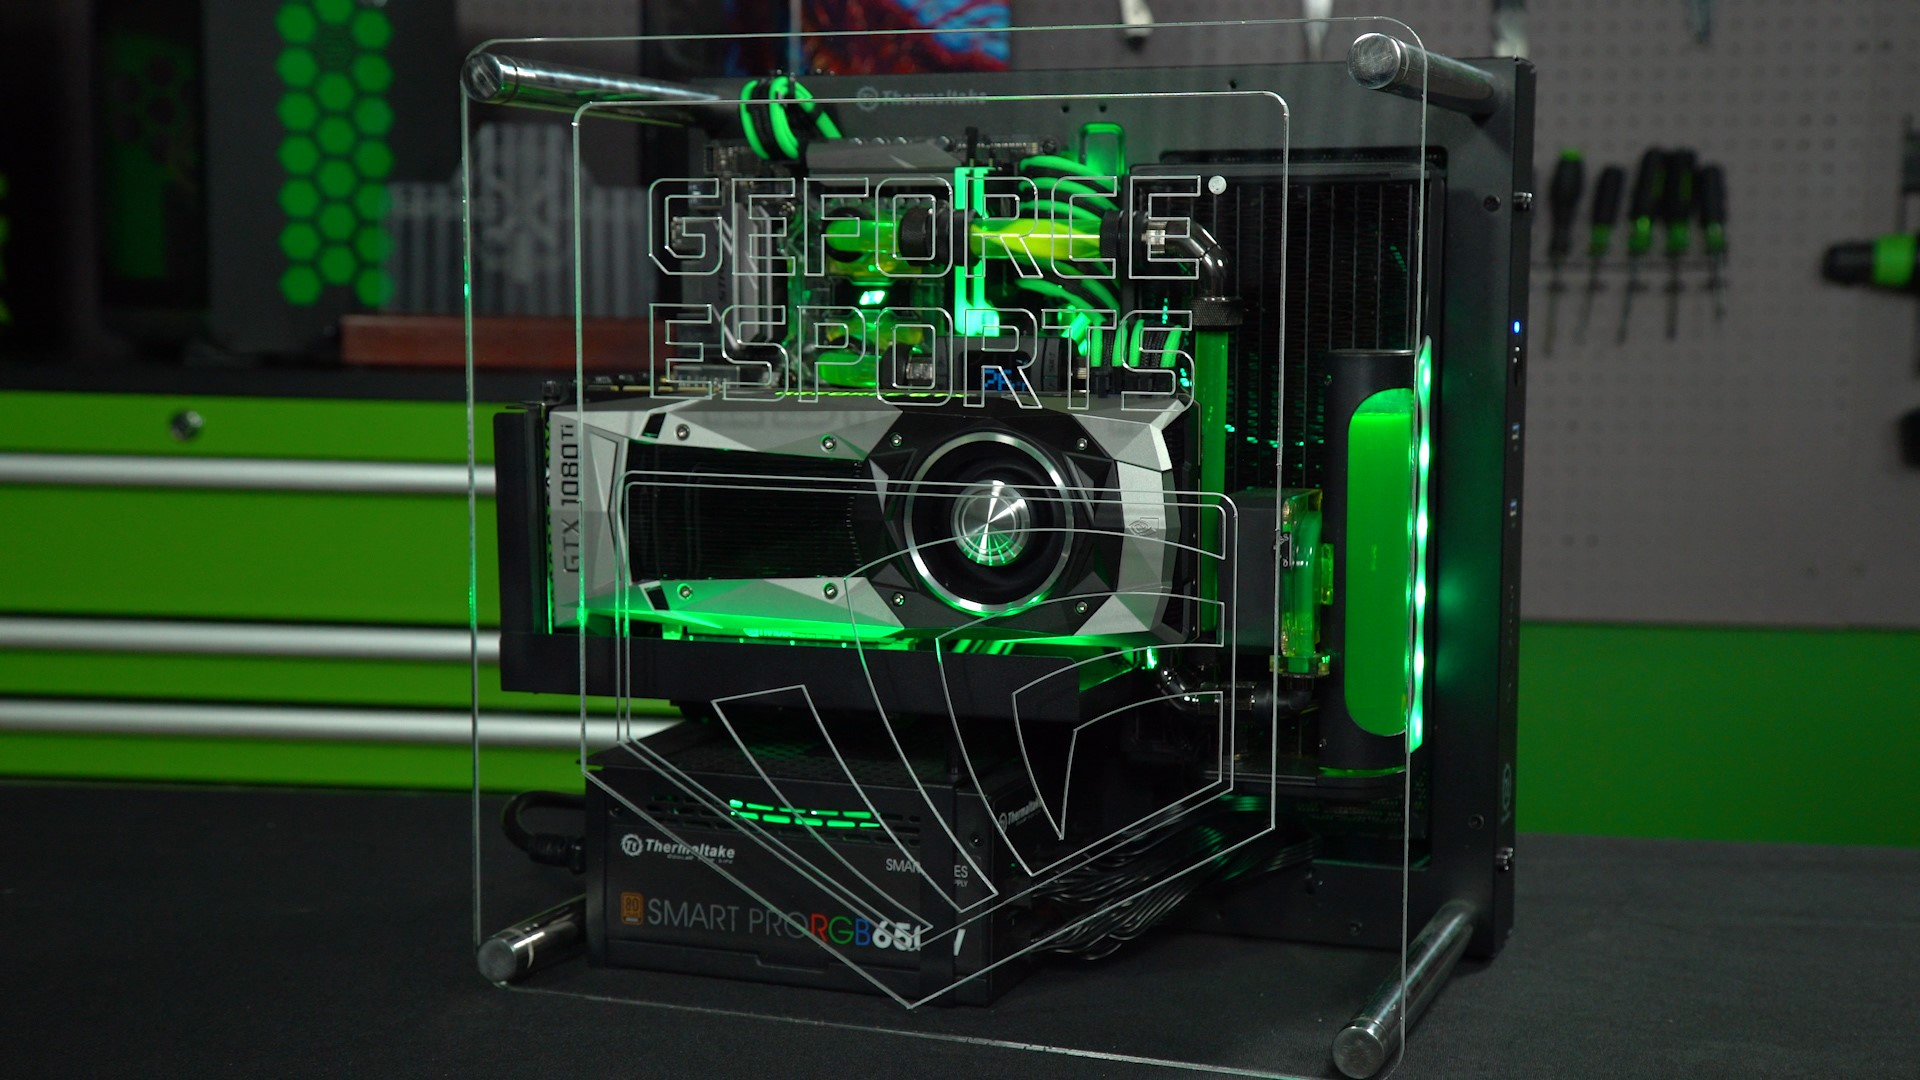 Geforce Garage How To Build Our Geforce Esports Rig Geforce